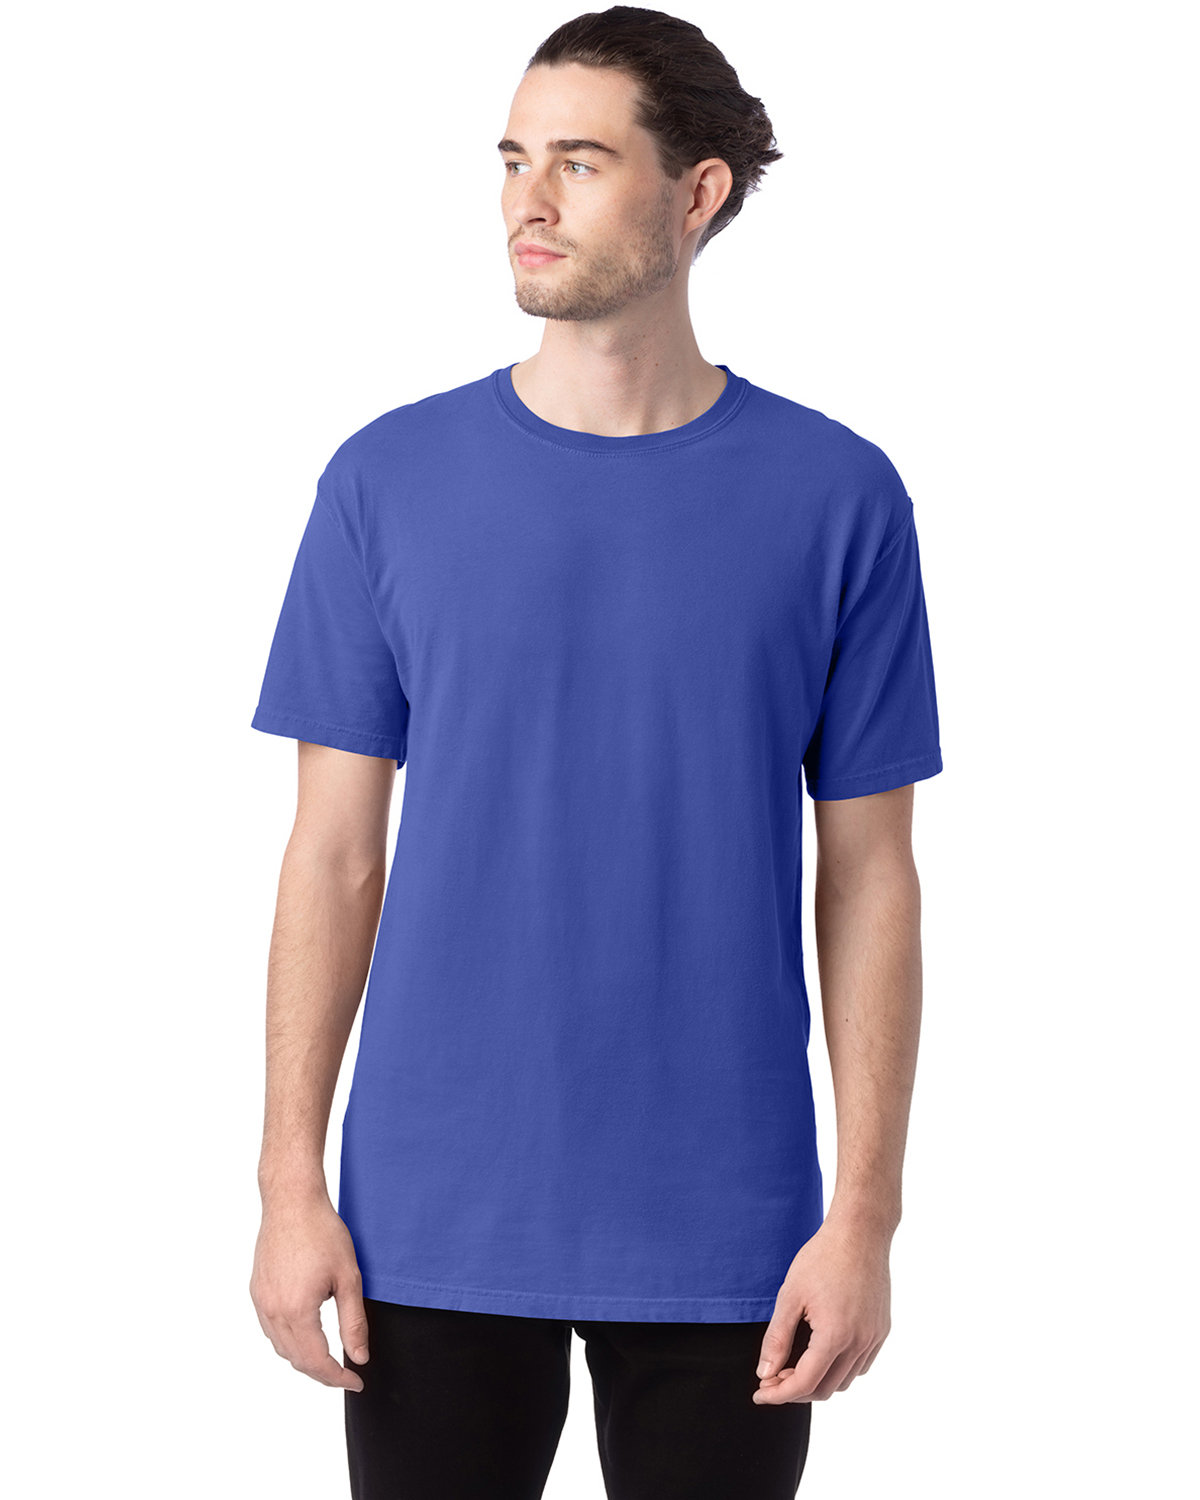 ComfortWash by Hanes Men's 5.5 oz., 100% Ringspun Cotton Garment-Dyed T-Shirt DEEP FORTE